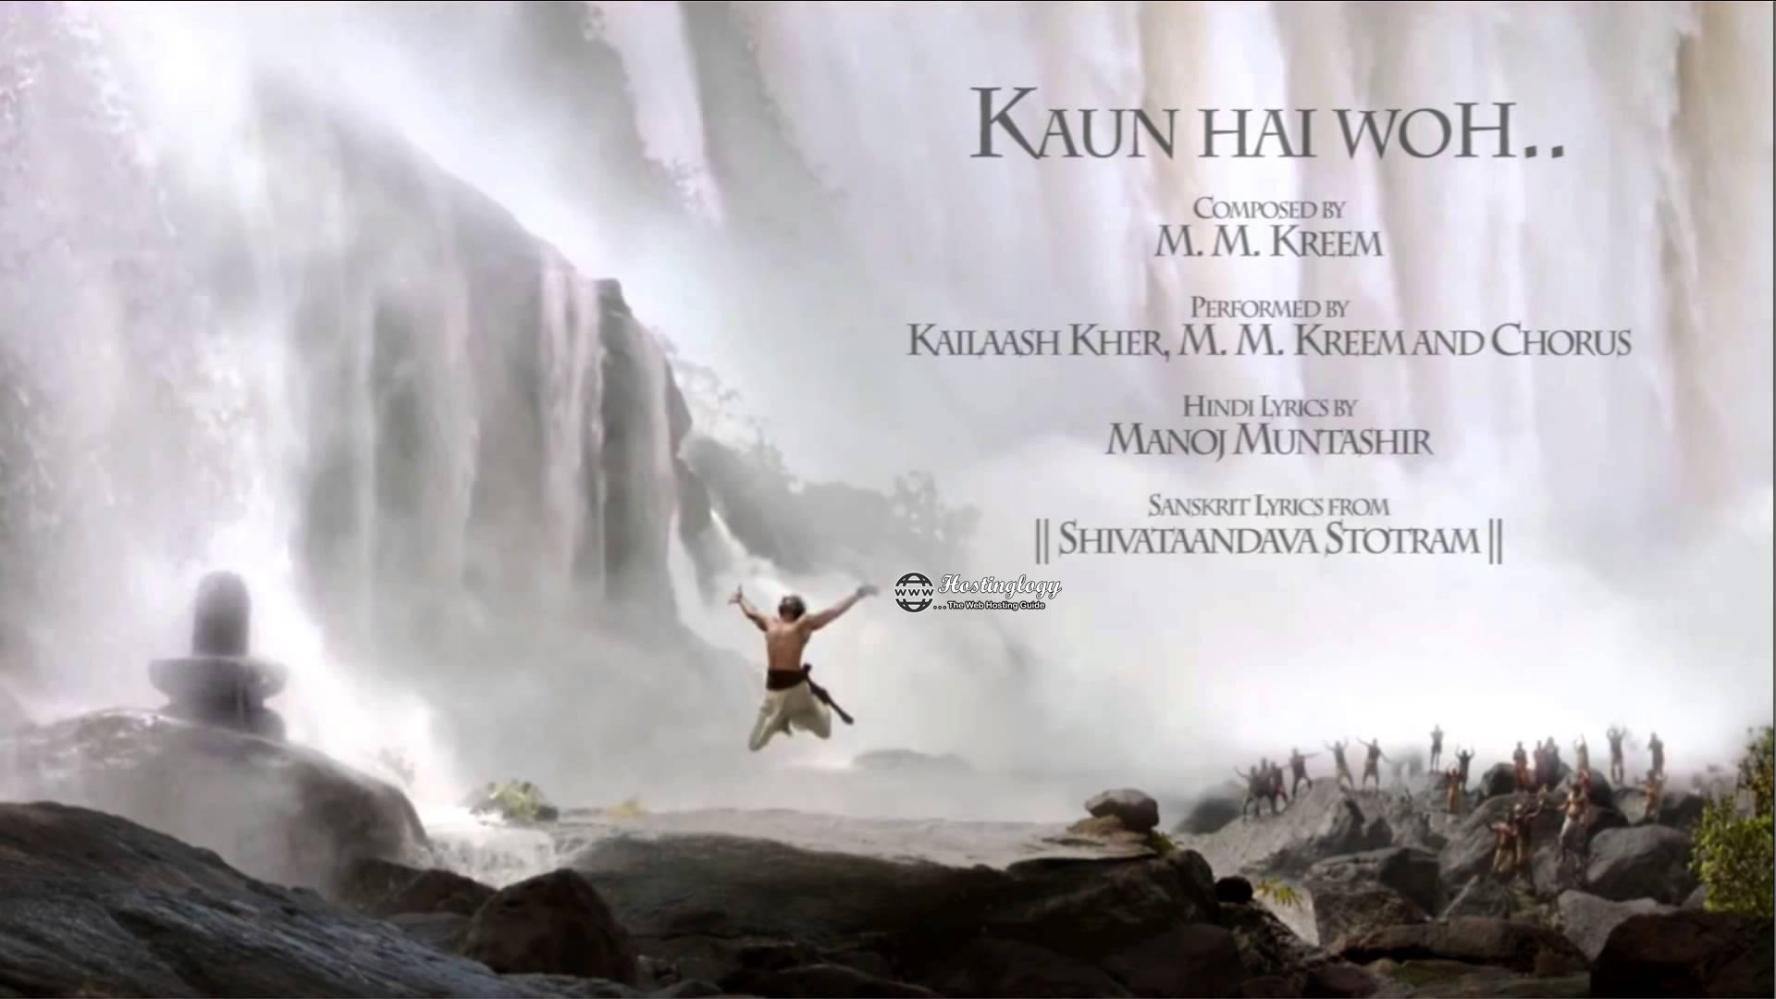 What Is The Meaning Of Sanskrit Verse In The Song Kaun Hai Wo In